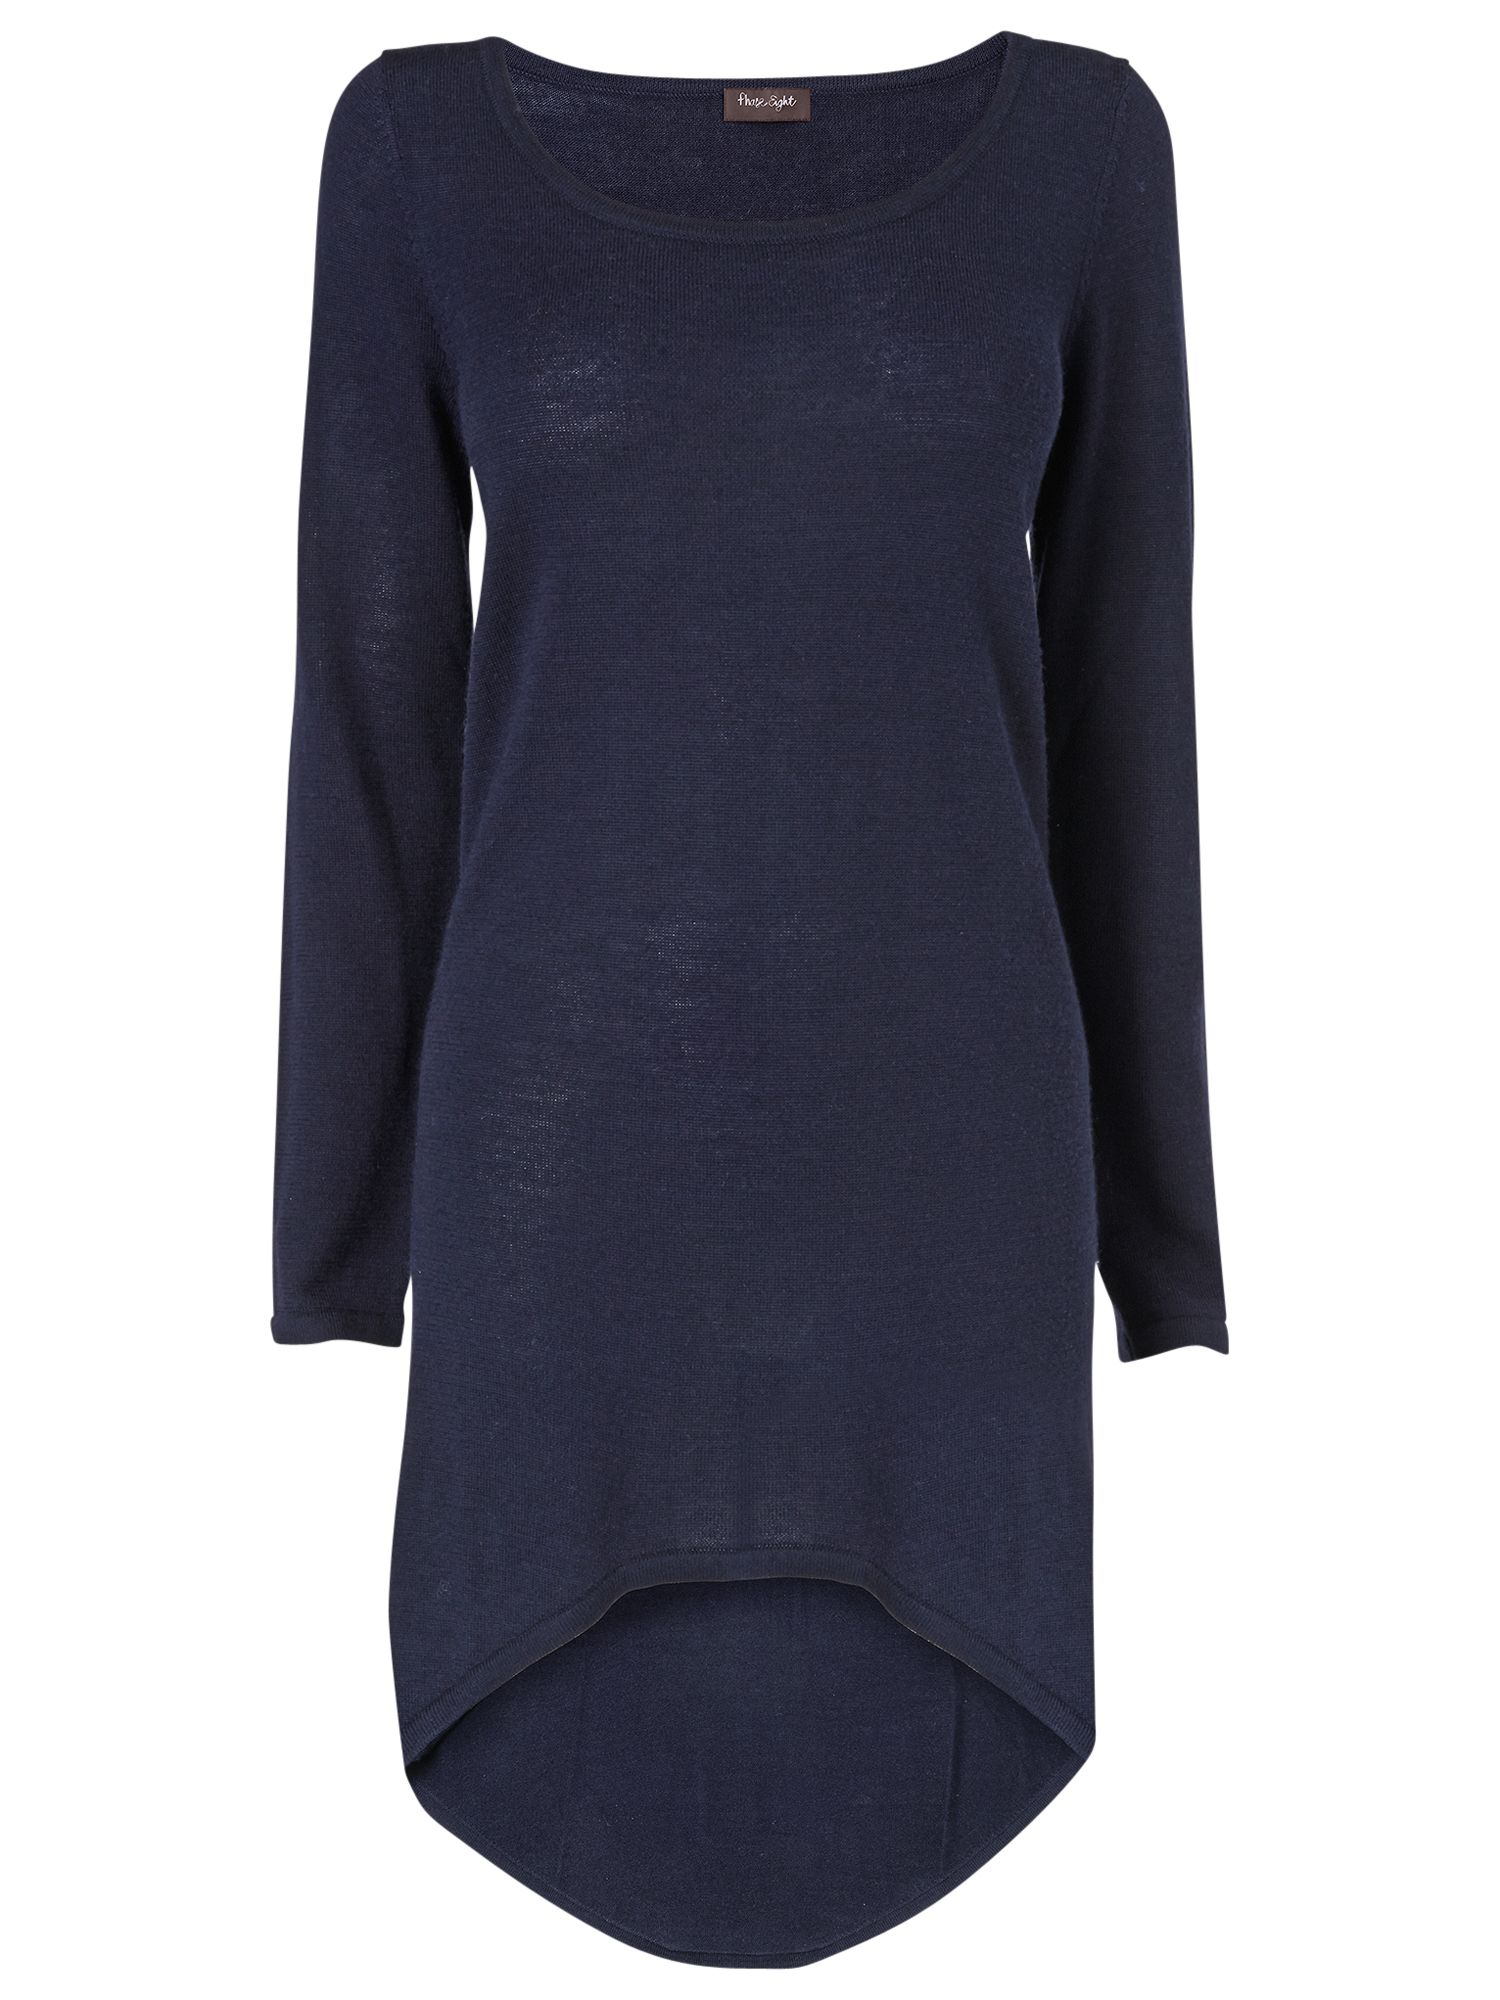 phase eight katrina ellipse hem tunic dress navy, phase, eight, katrina, ellipse, hem, tunic, dress, navy, phase eight, 12|14, women, inactive womenswear, new reductions, womens dresses, special offers, womenswear offers, womens dresses offers, fashion magazine, brands l-z, clearance, 1735381